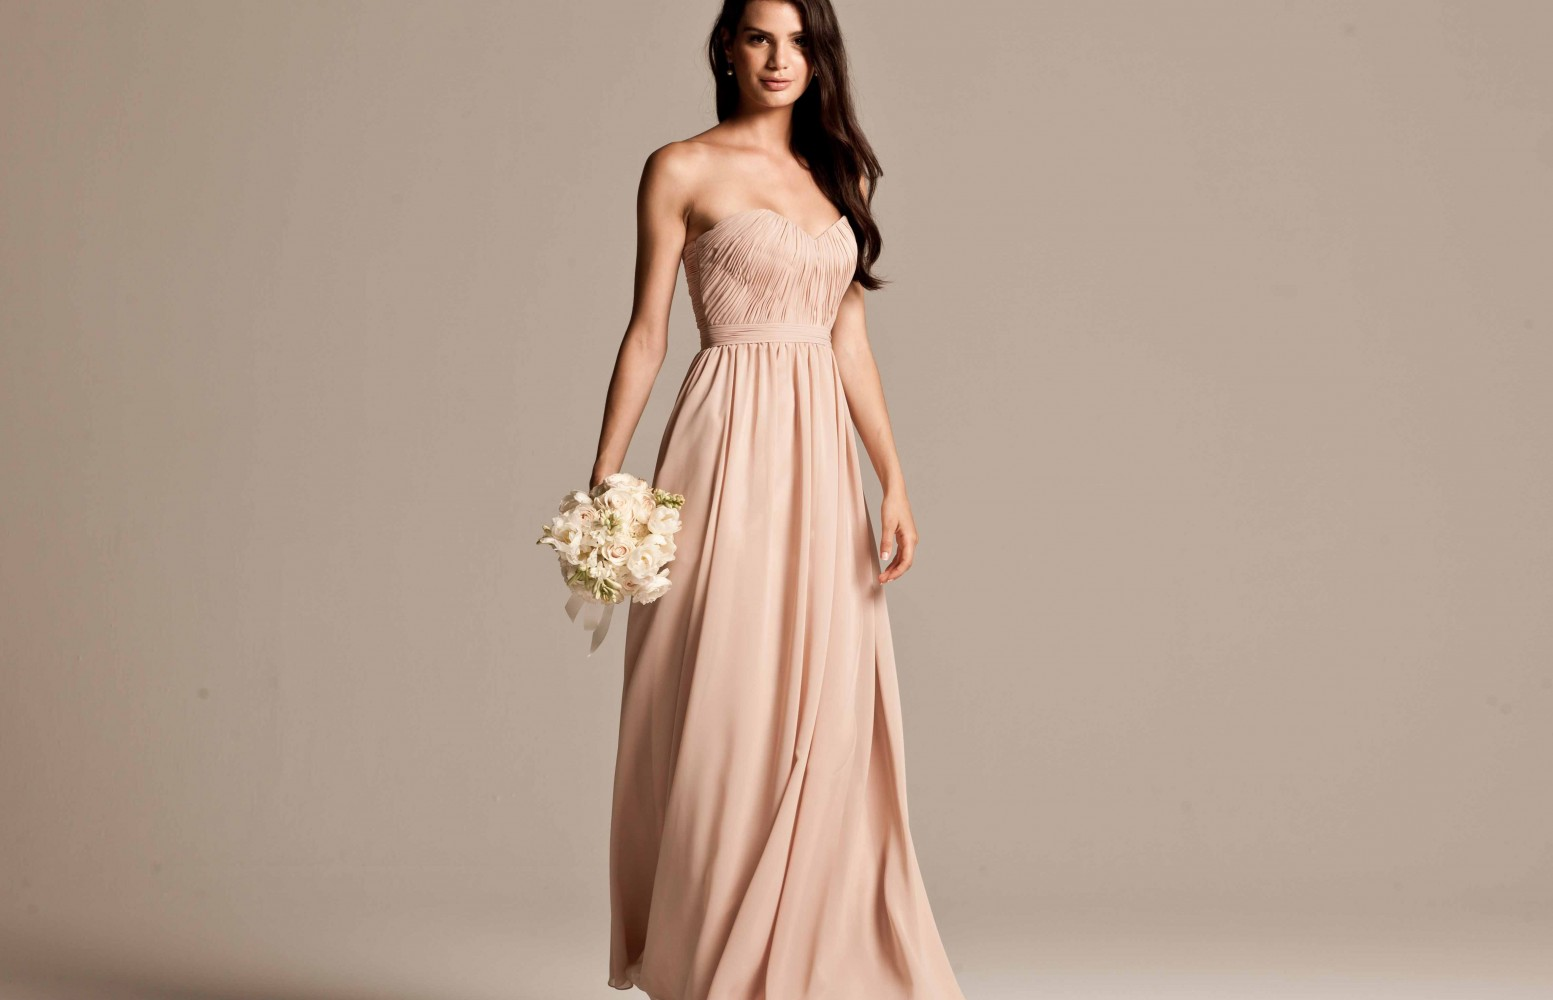 Amore wedding dresses page 3 of 473 bridesmaid dresses uk our new collection of bridesmaid dresses are arriving come to queenieaustralia to select dresses for your bridesmaid and your wedding theme ombrellifo Image collections